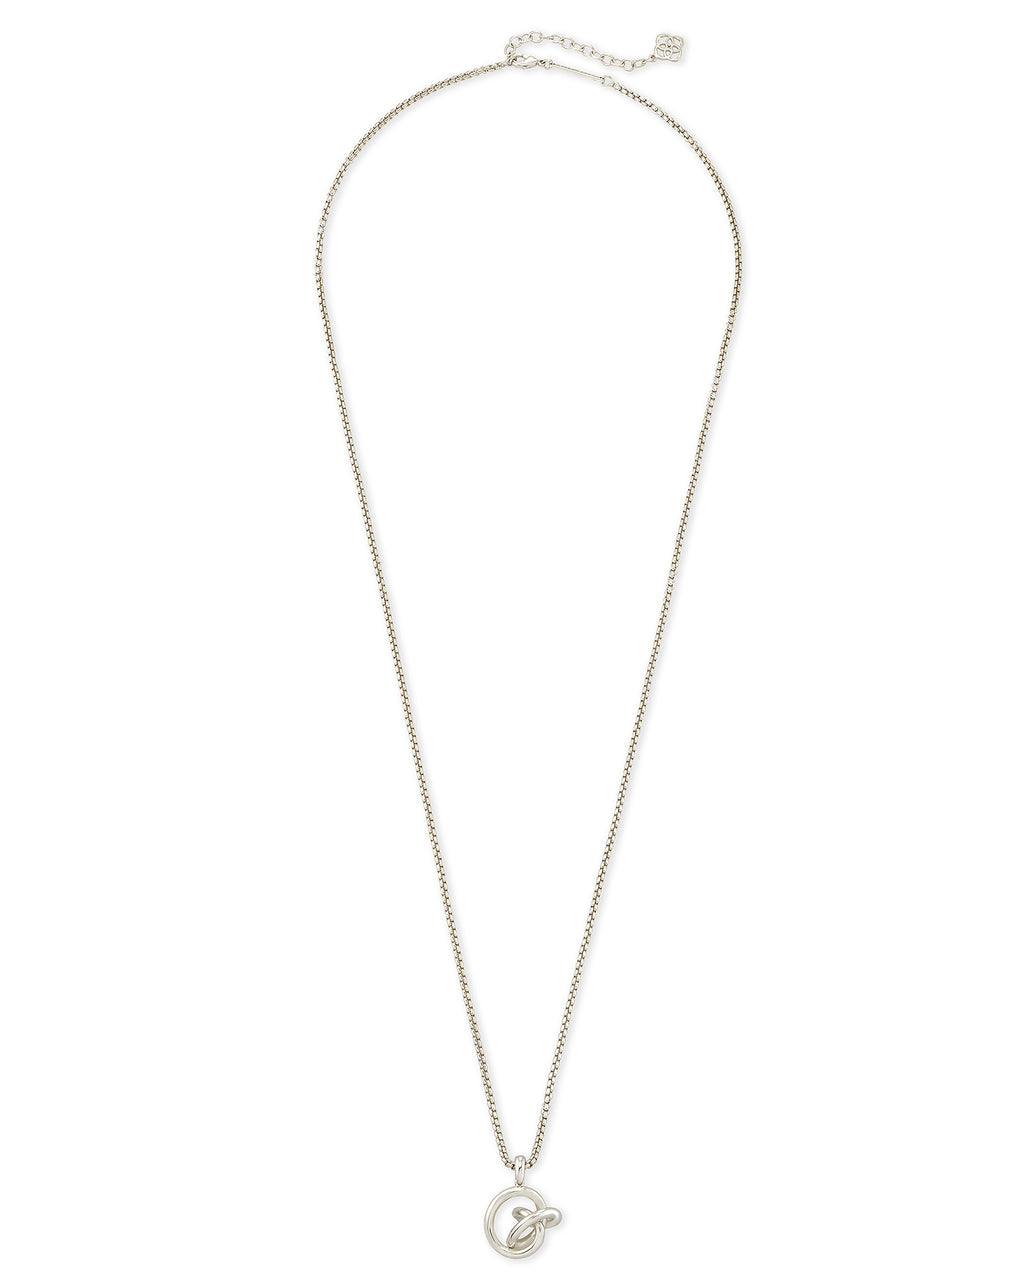 Presleigh Love Knot Pendant Necklace In Silver